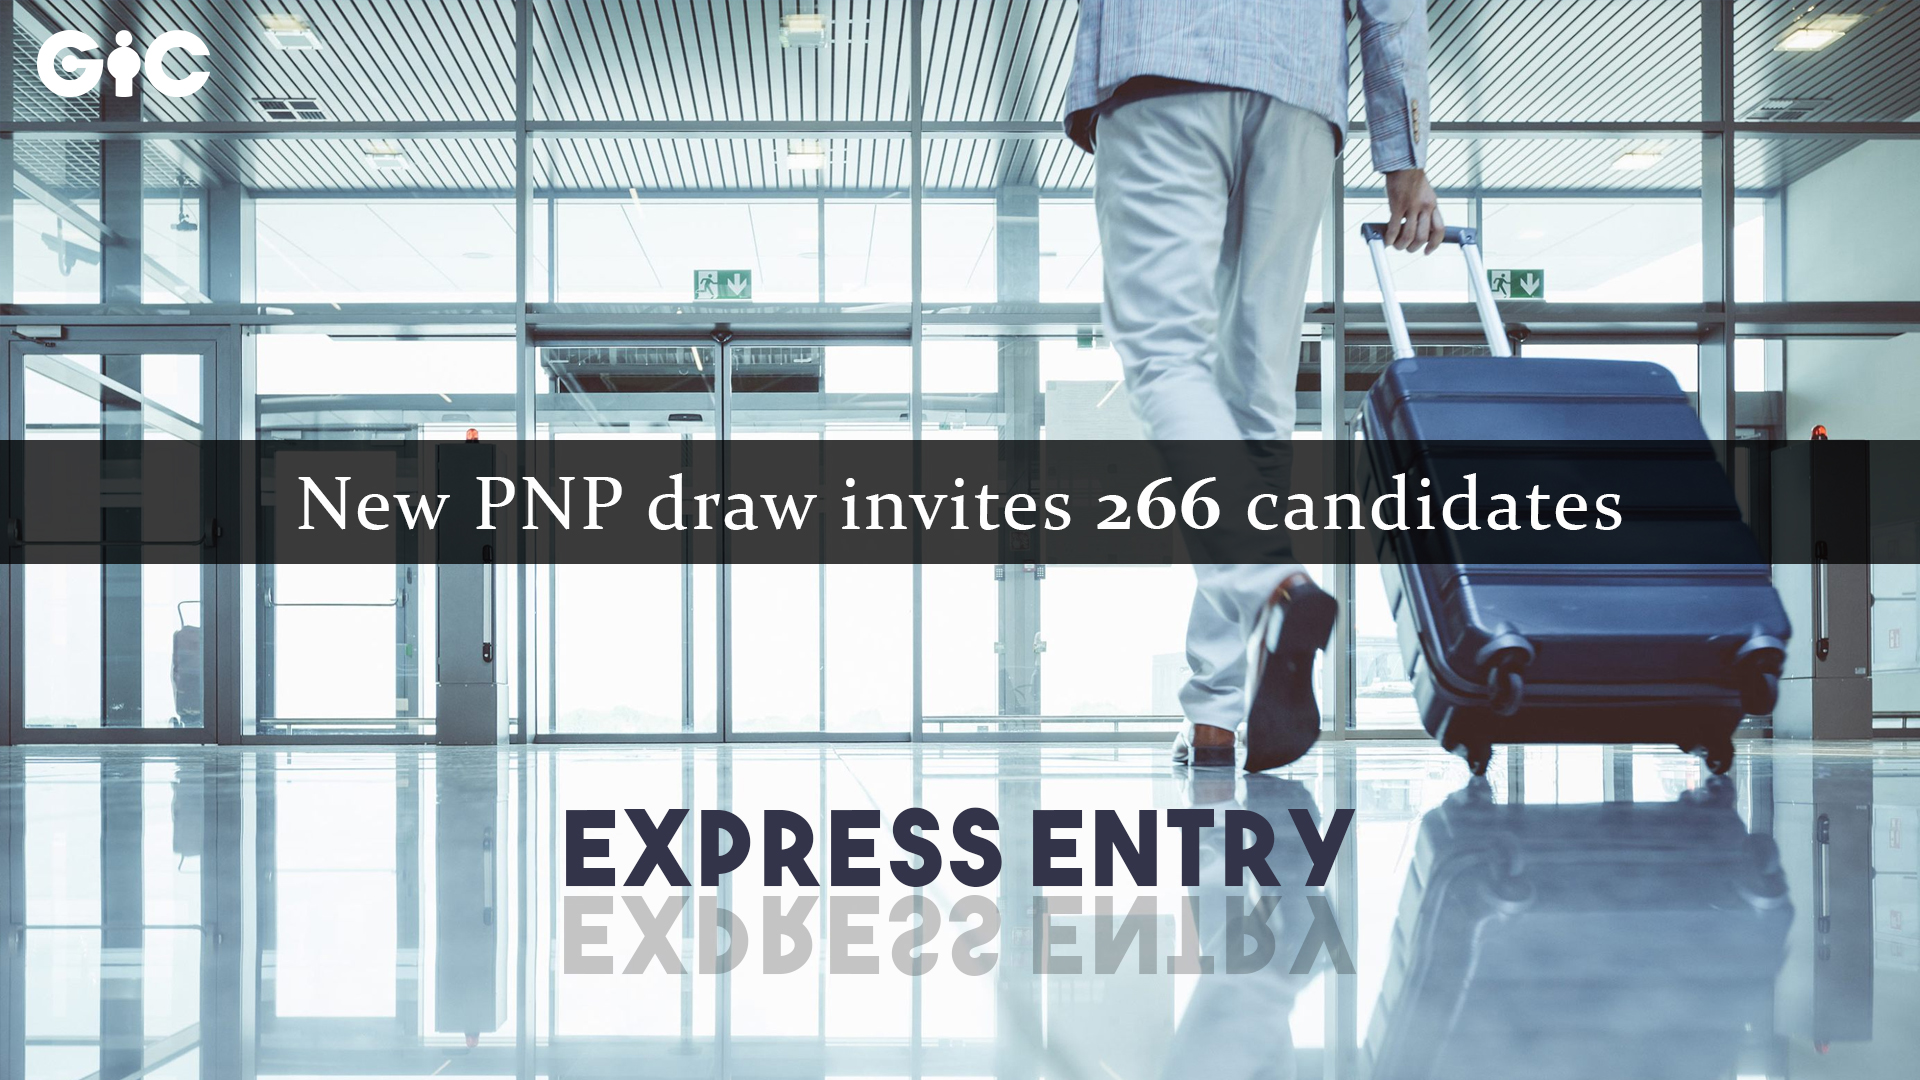 Express Entry New PNP draw invites 266 candidates